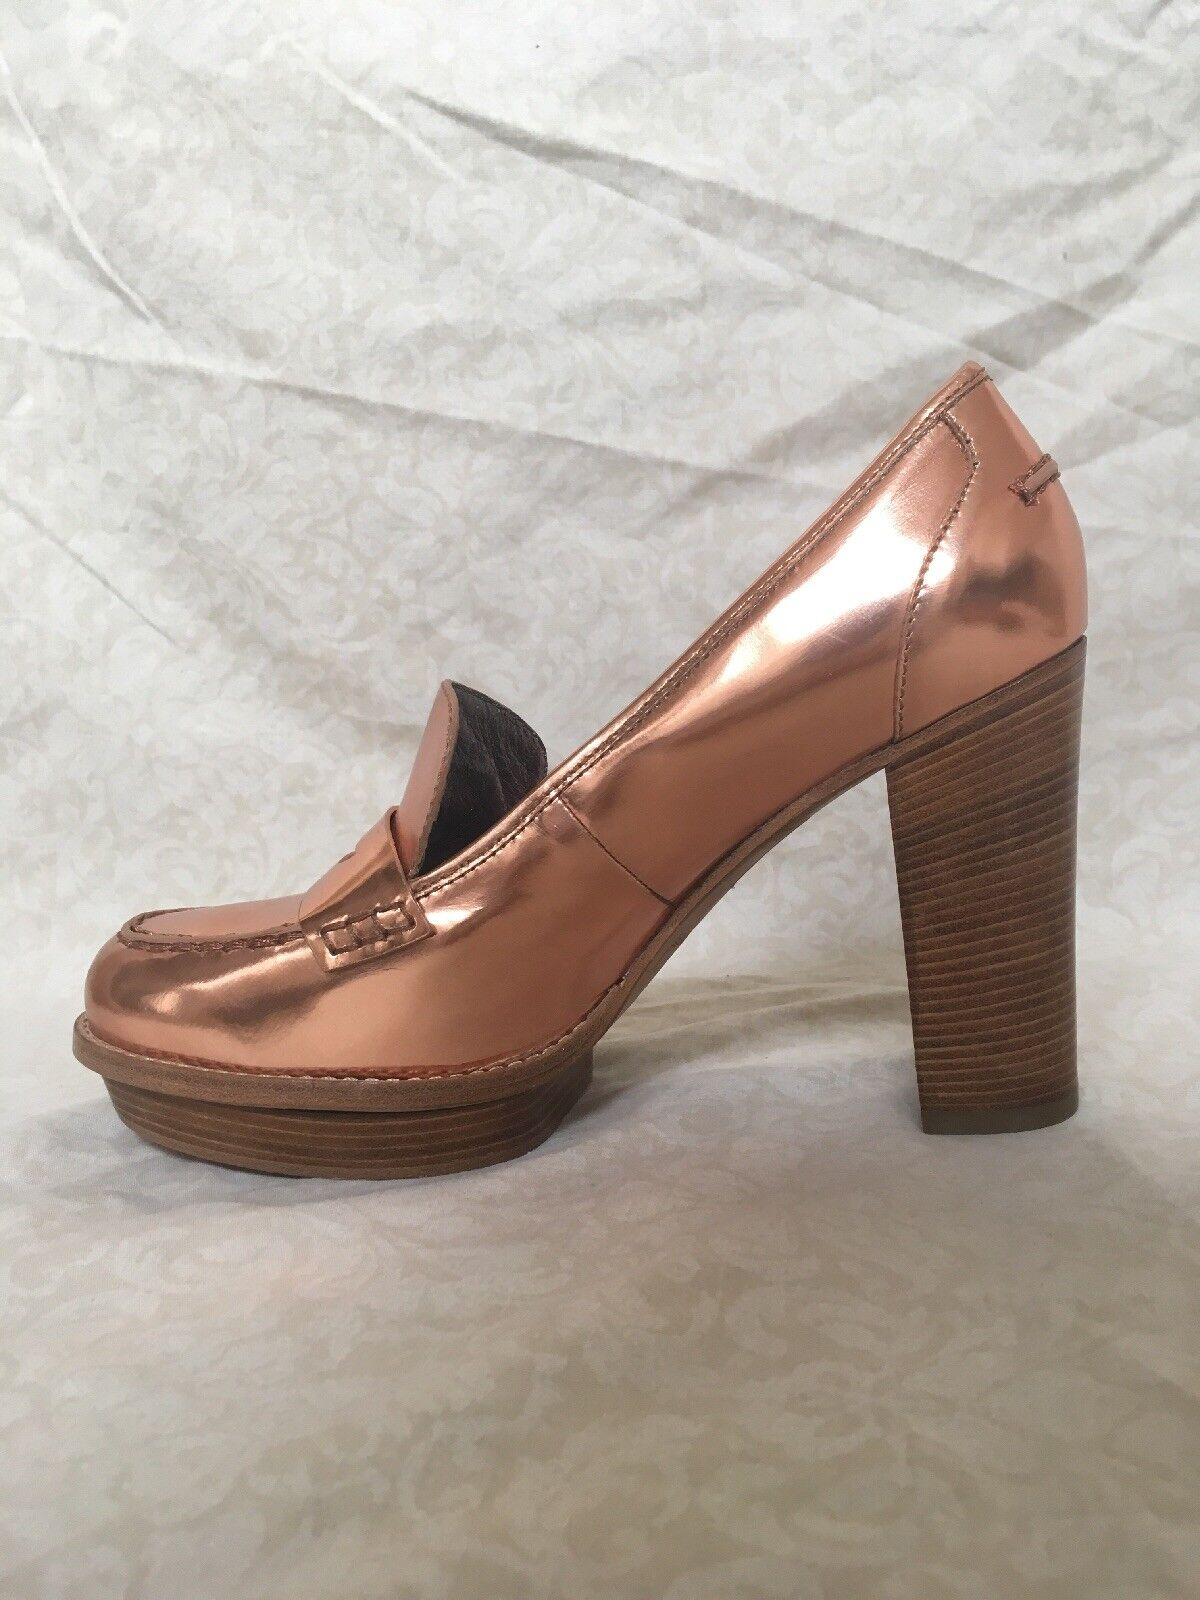 Marc By Marc Jacobs, Bronze Heeled Mules, Pelle, Donna's Shoes, Size Size Shoes, 10M 595211